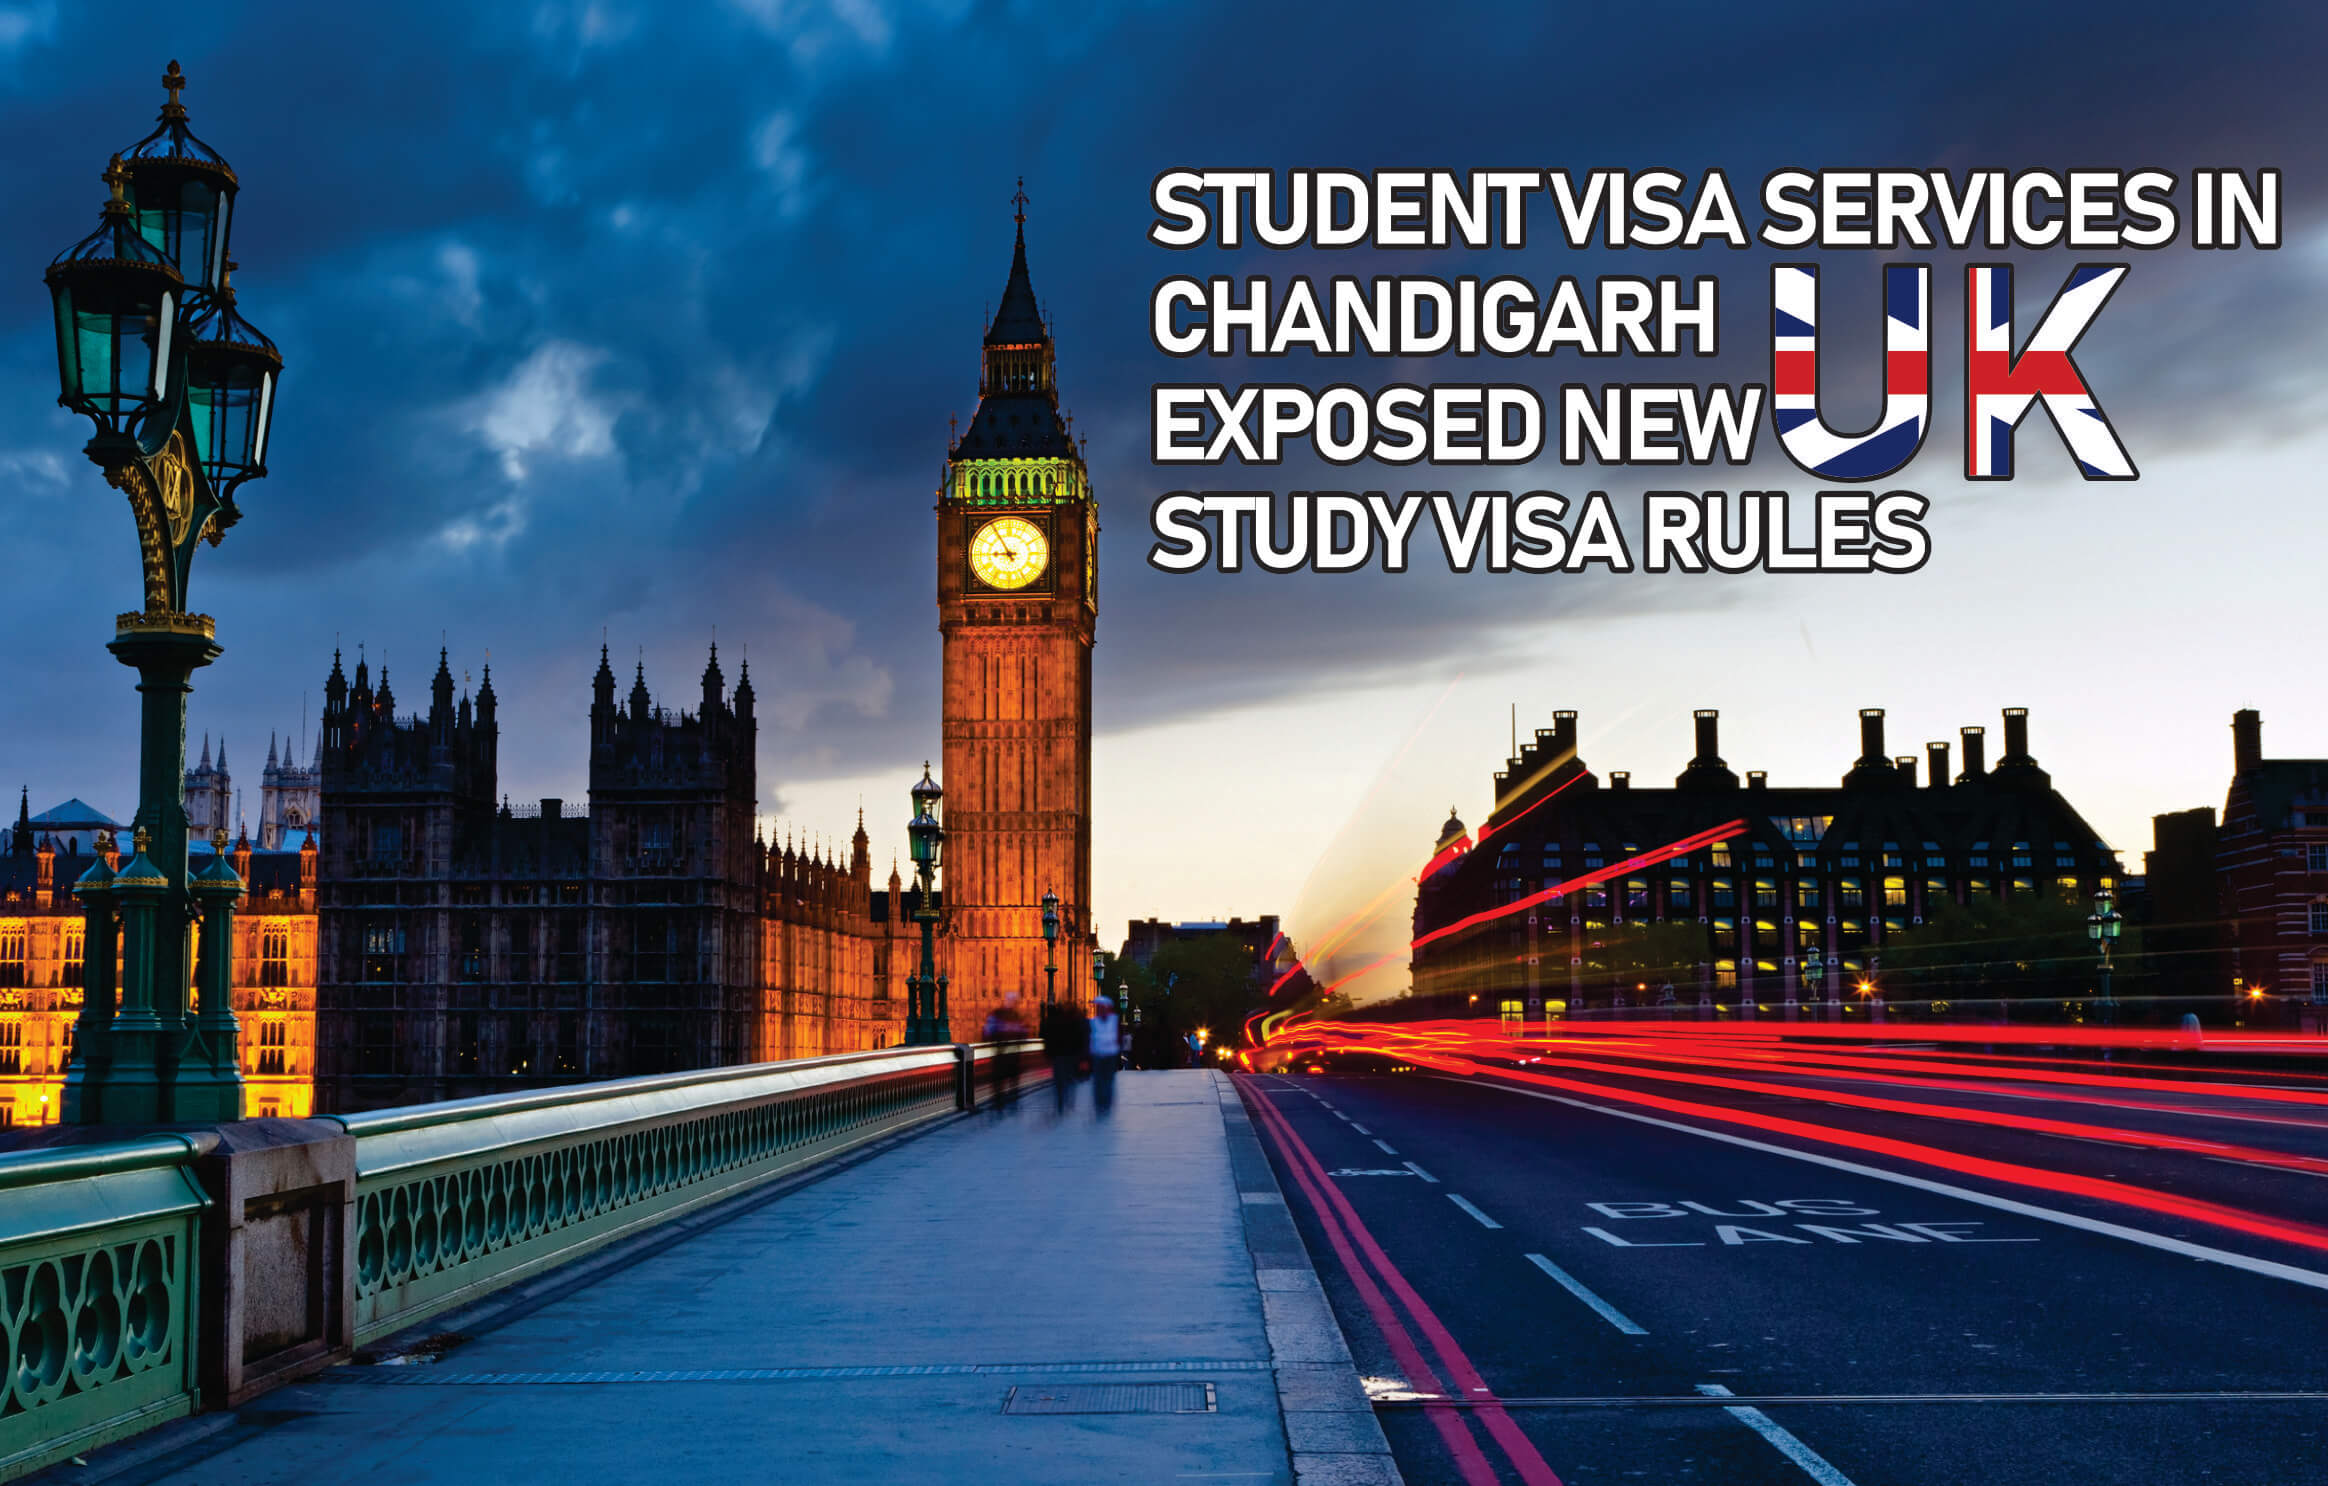 students-visa-service-in-chandigarh